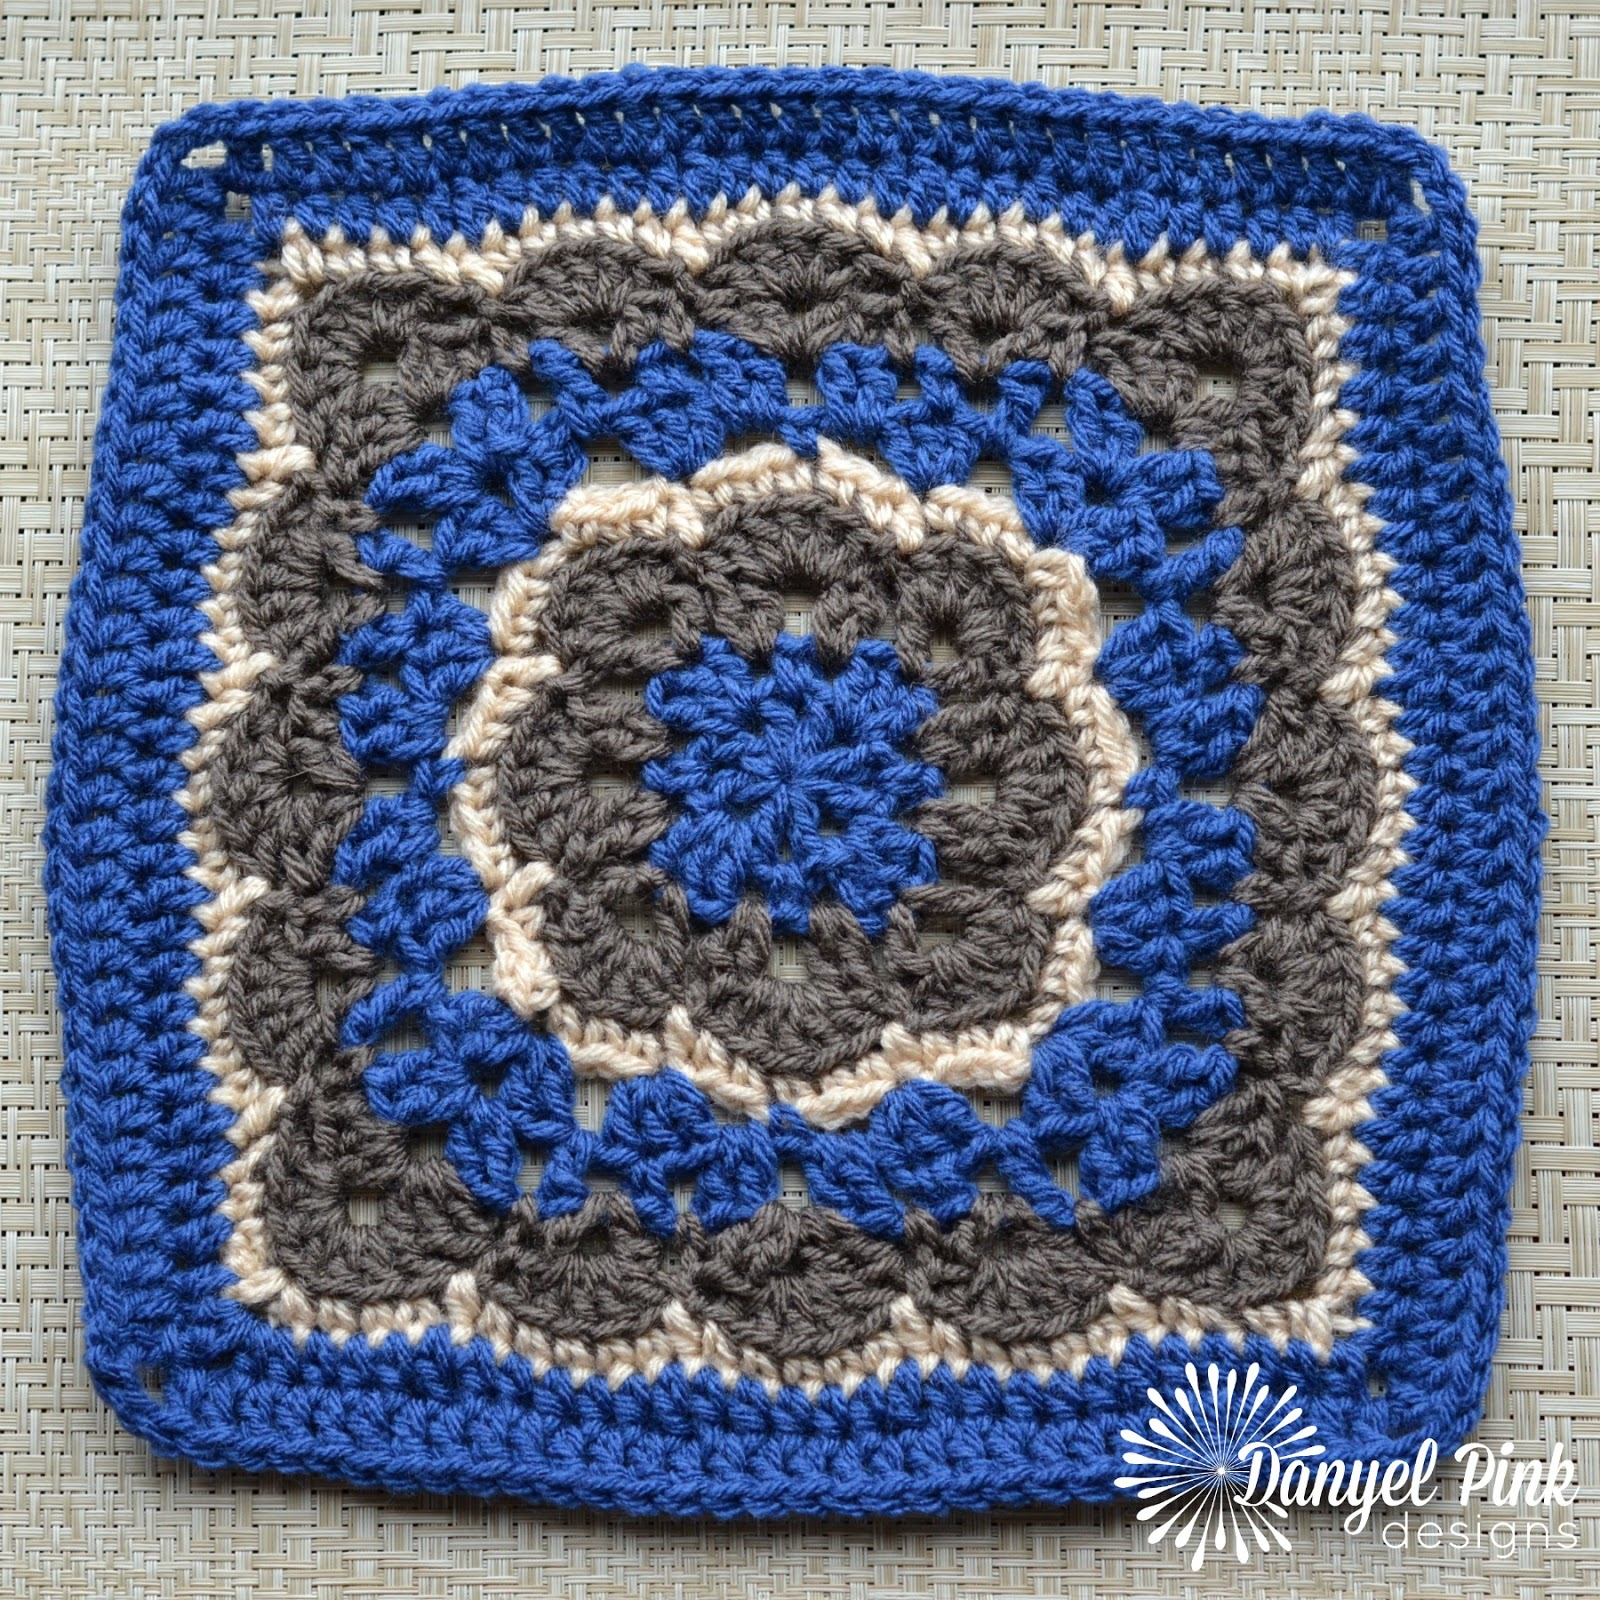 Crochet Patterns Squares : Danyel Pink Designs: CROCHET PATTERN - Winter Bloom Afghan Square